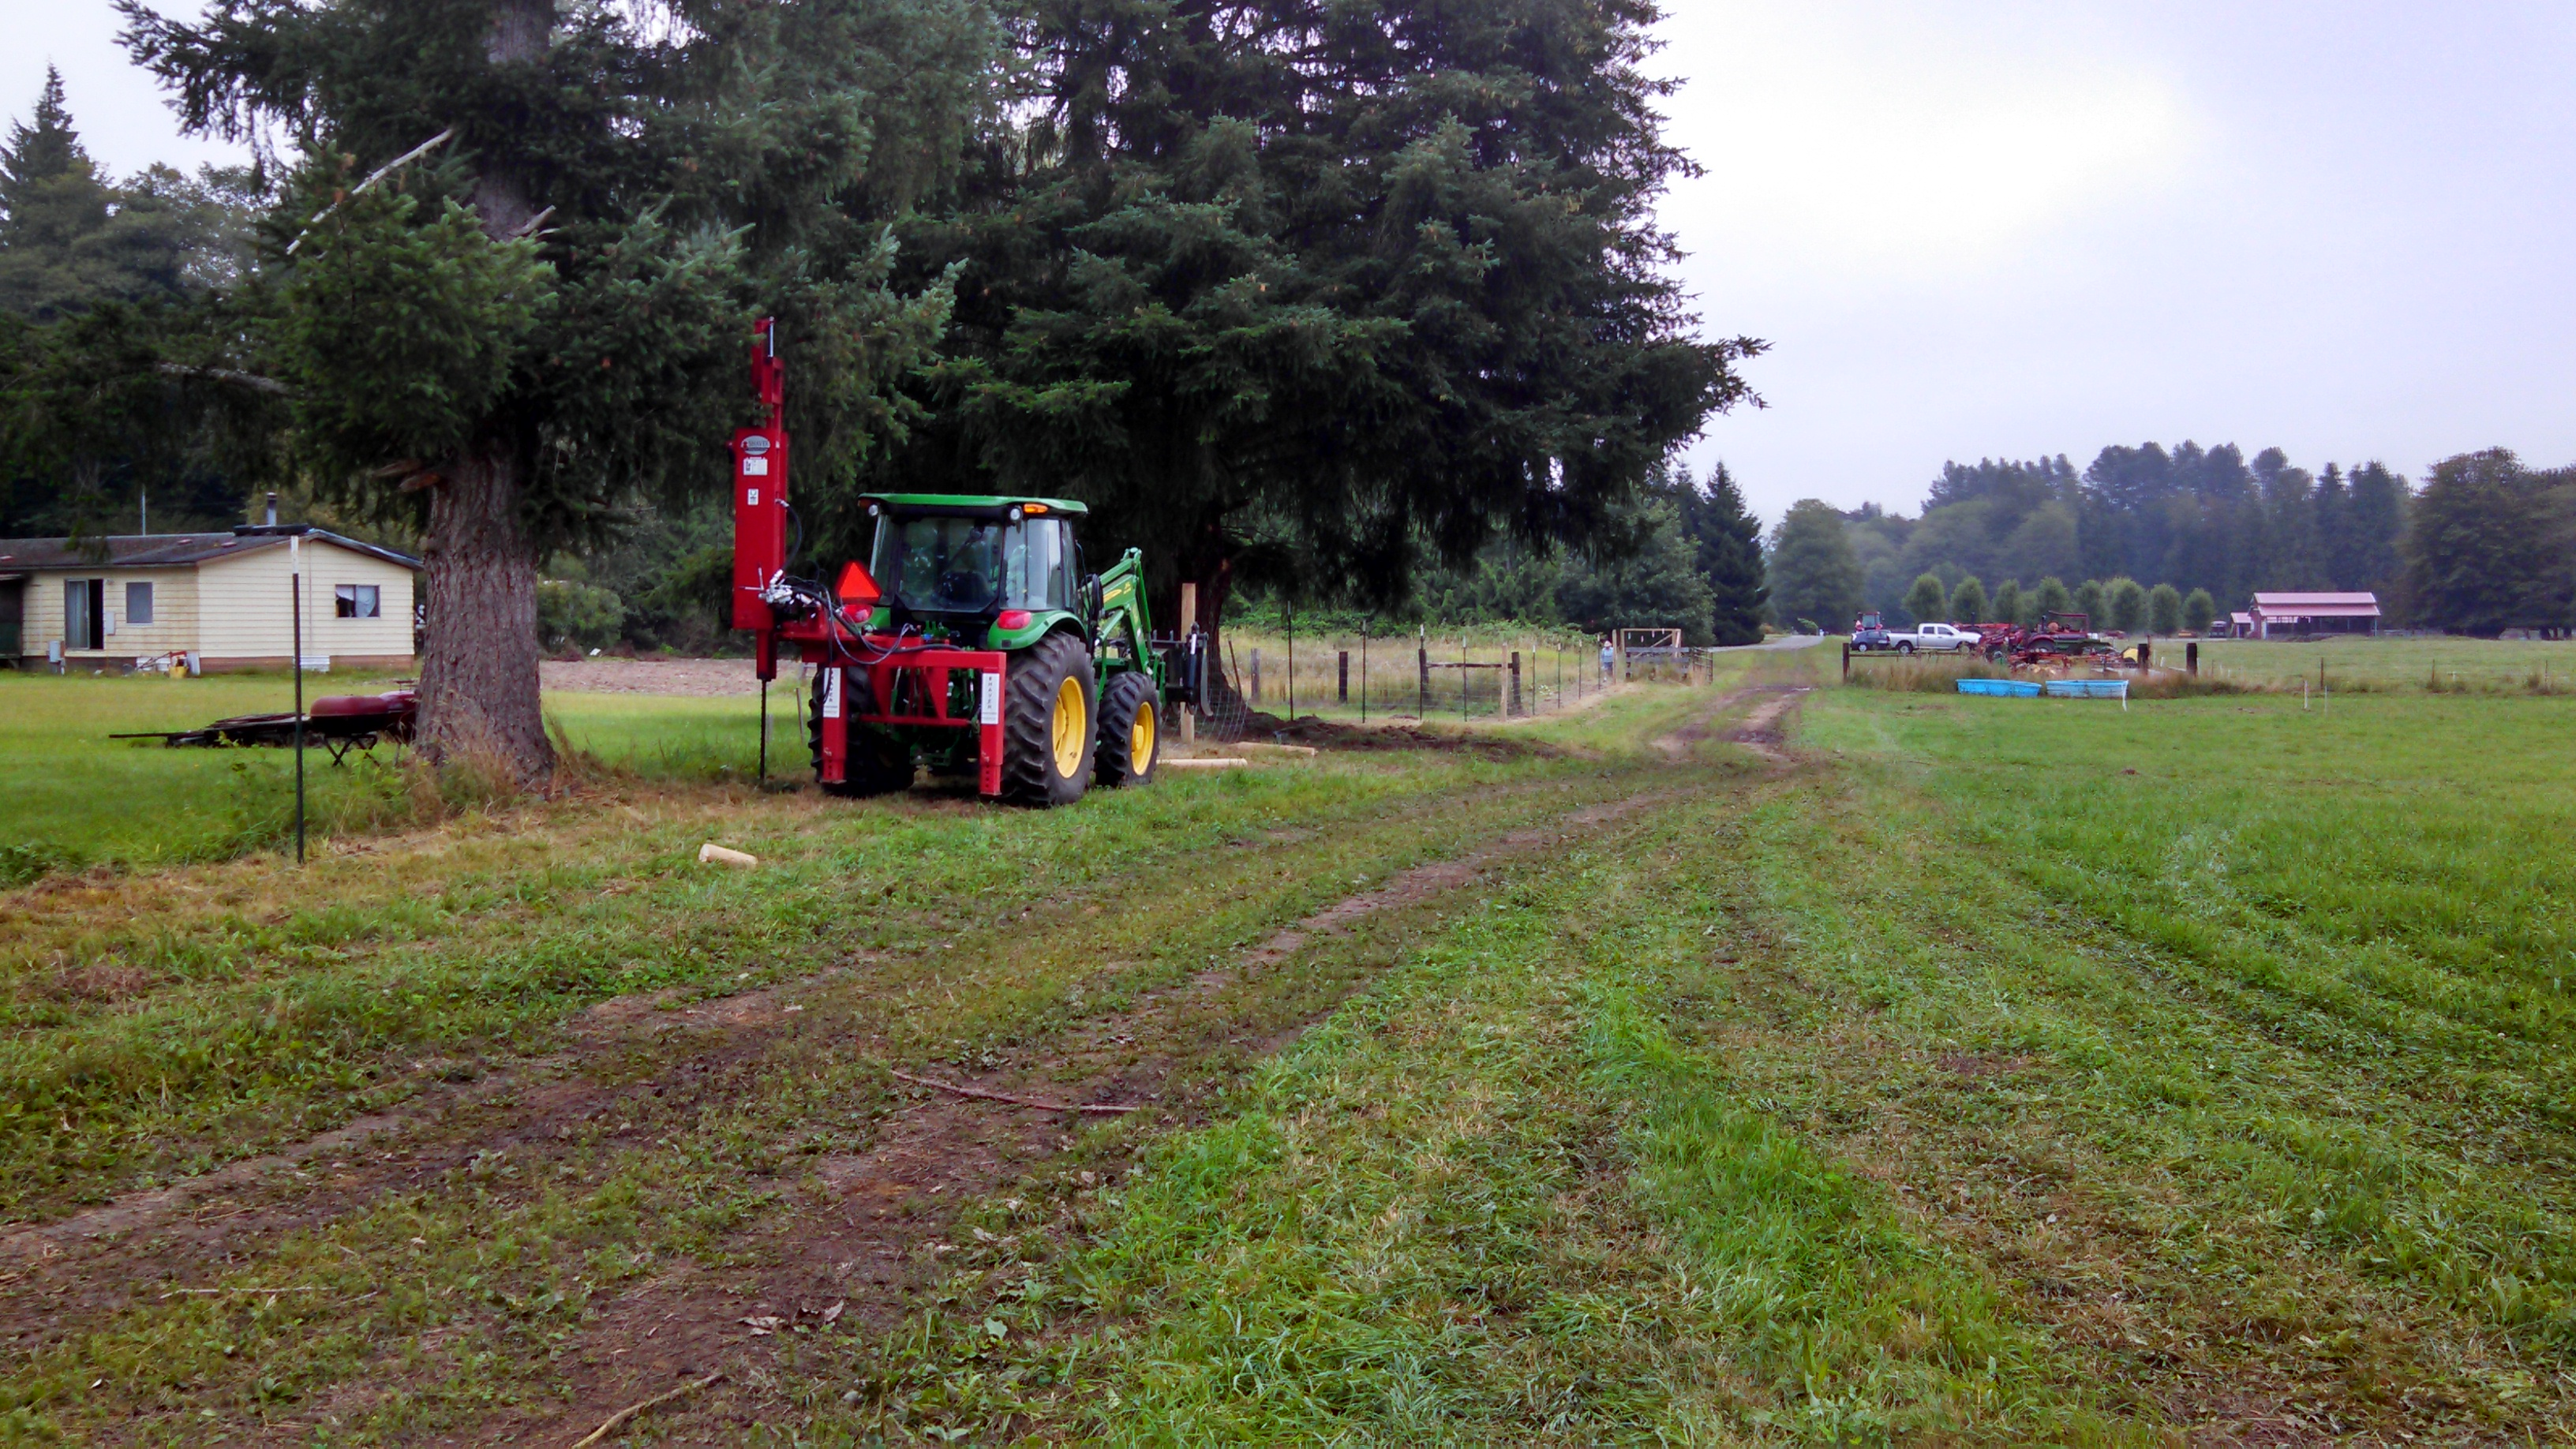 Tulalip Tribes Natural Resources Department news link to Tribes Survey Nooksack Herd Using Elk Scat with image of tractor near trees in field